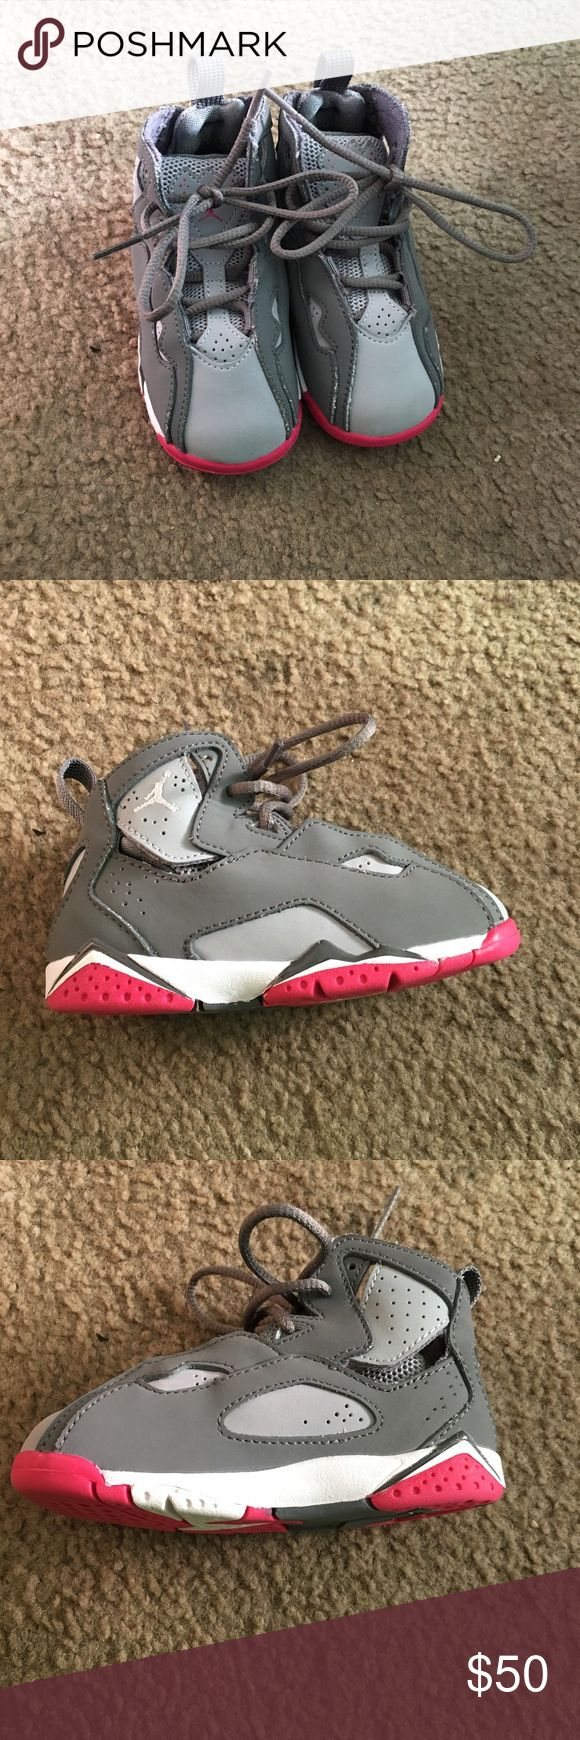 Pink gray and white Jordan's. Pink gray and white Jordan's that would put any kid in style.These are brand new. Jordan Shoes Sneakers